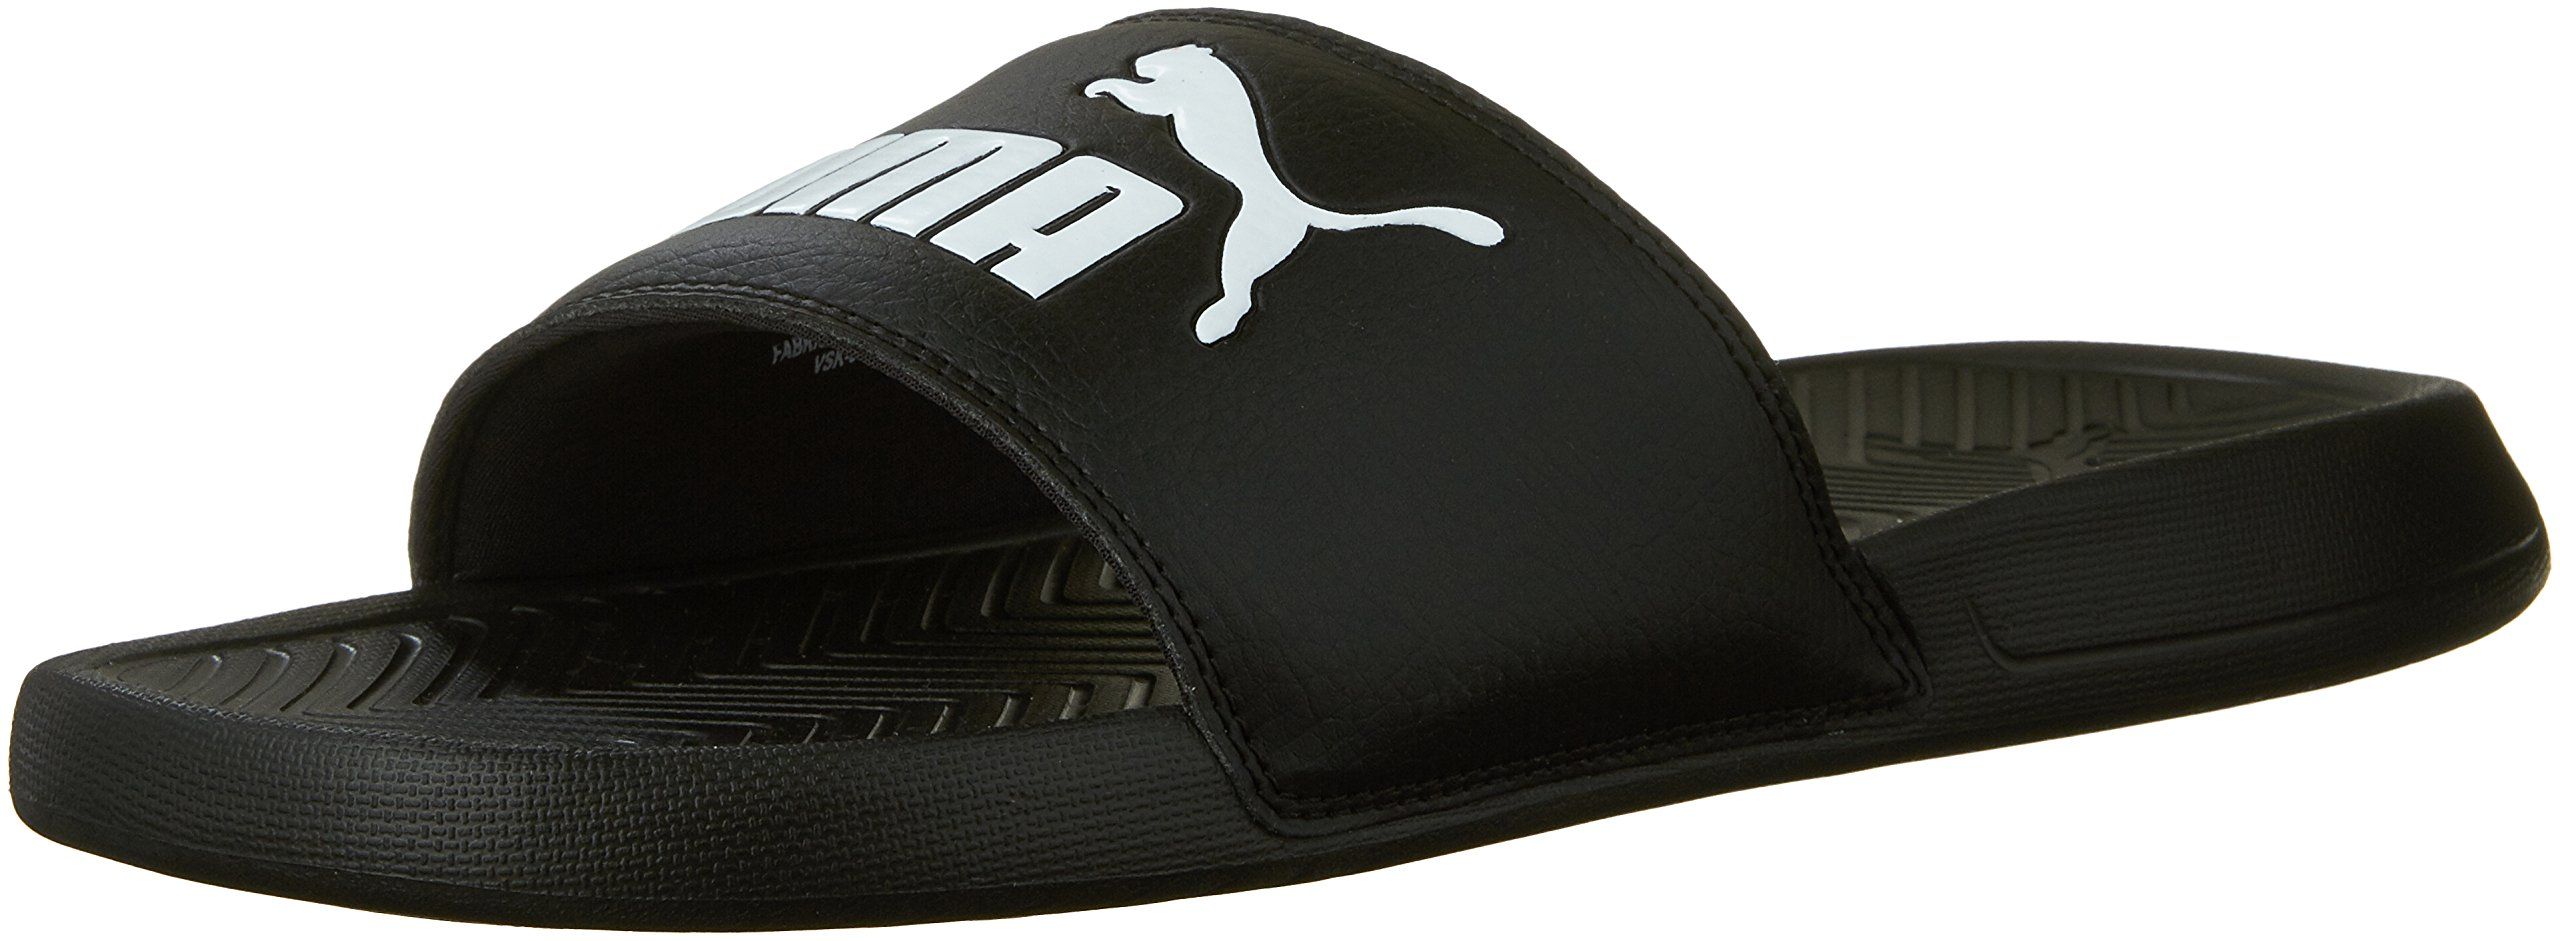 Puma 360265-10: Men's Popcat Slide Sandal Black (11 D(M) US) by